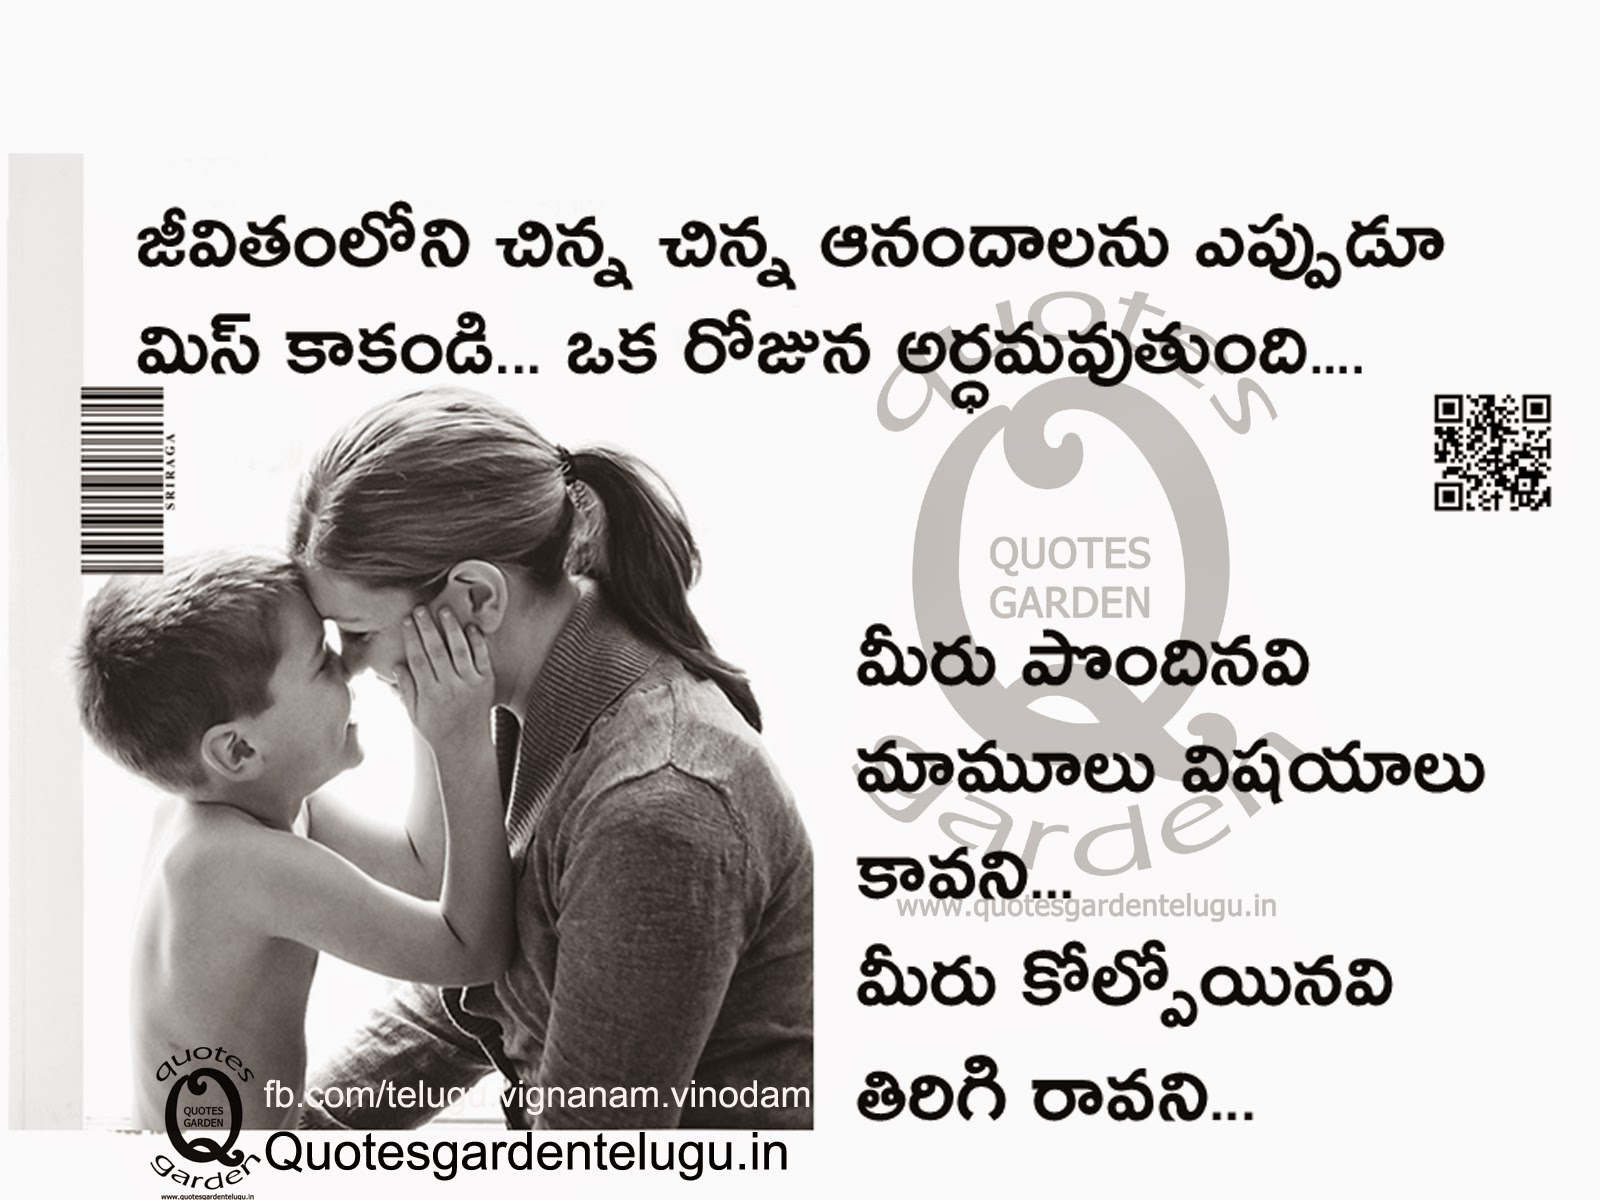 Beautiful Telugu Motivational Quotes with nice wallpapers HD images